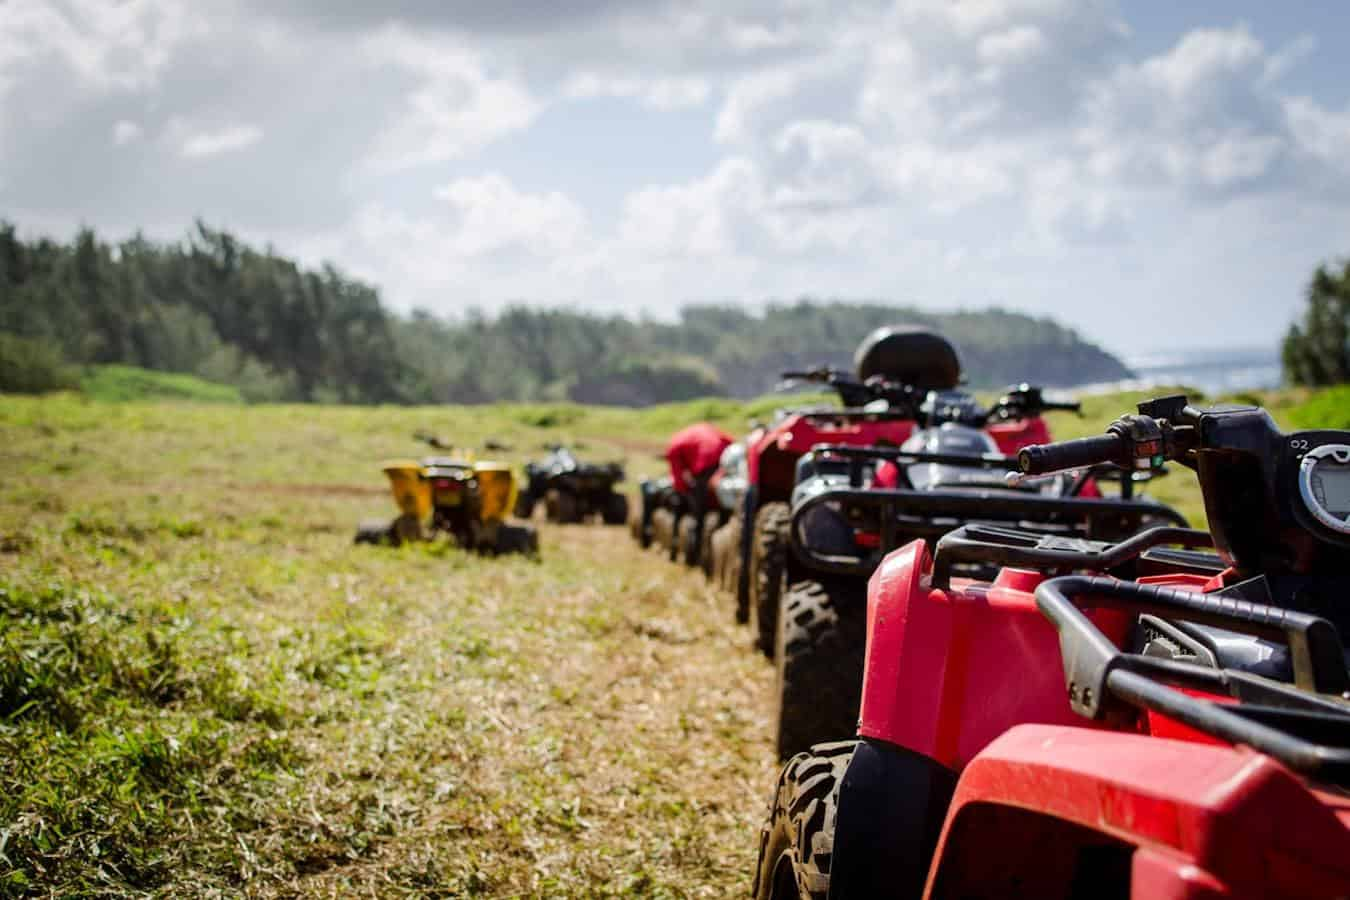 ATVs in a row in a field